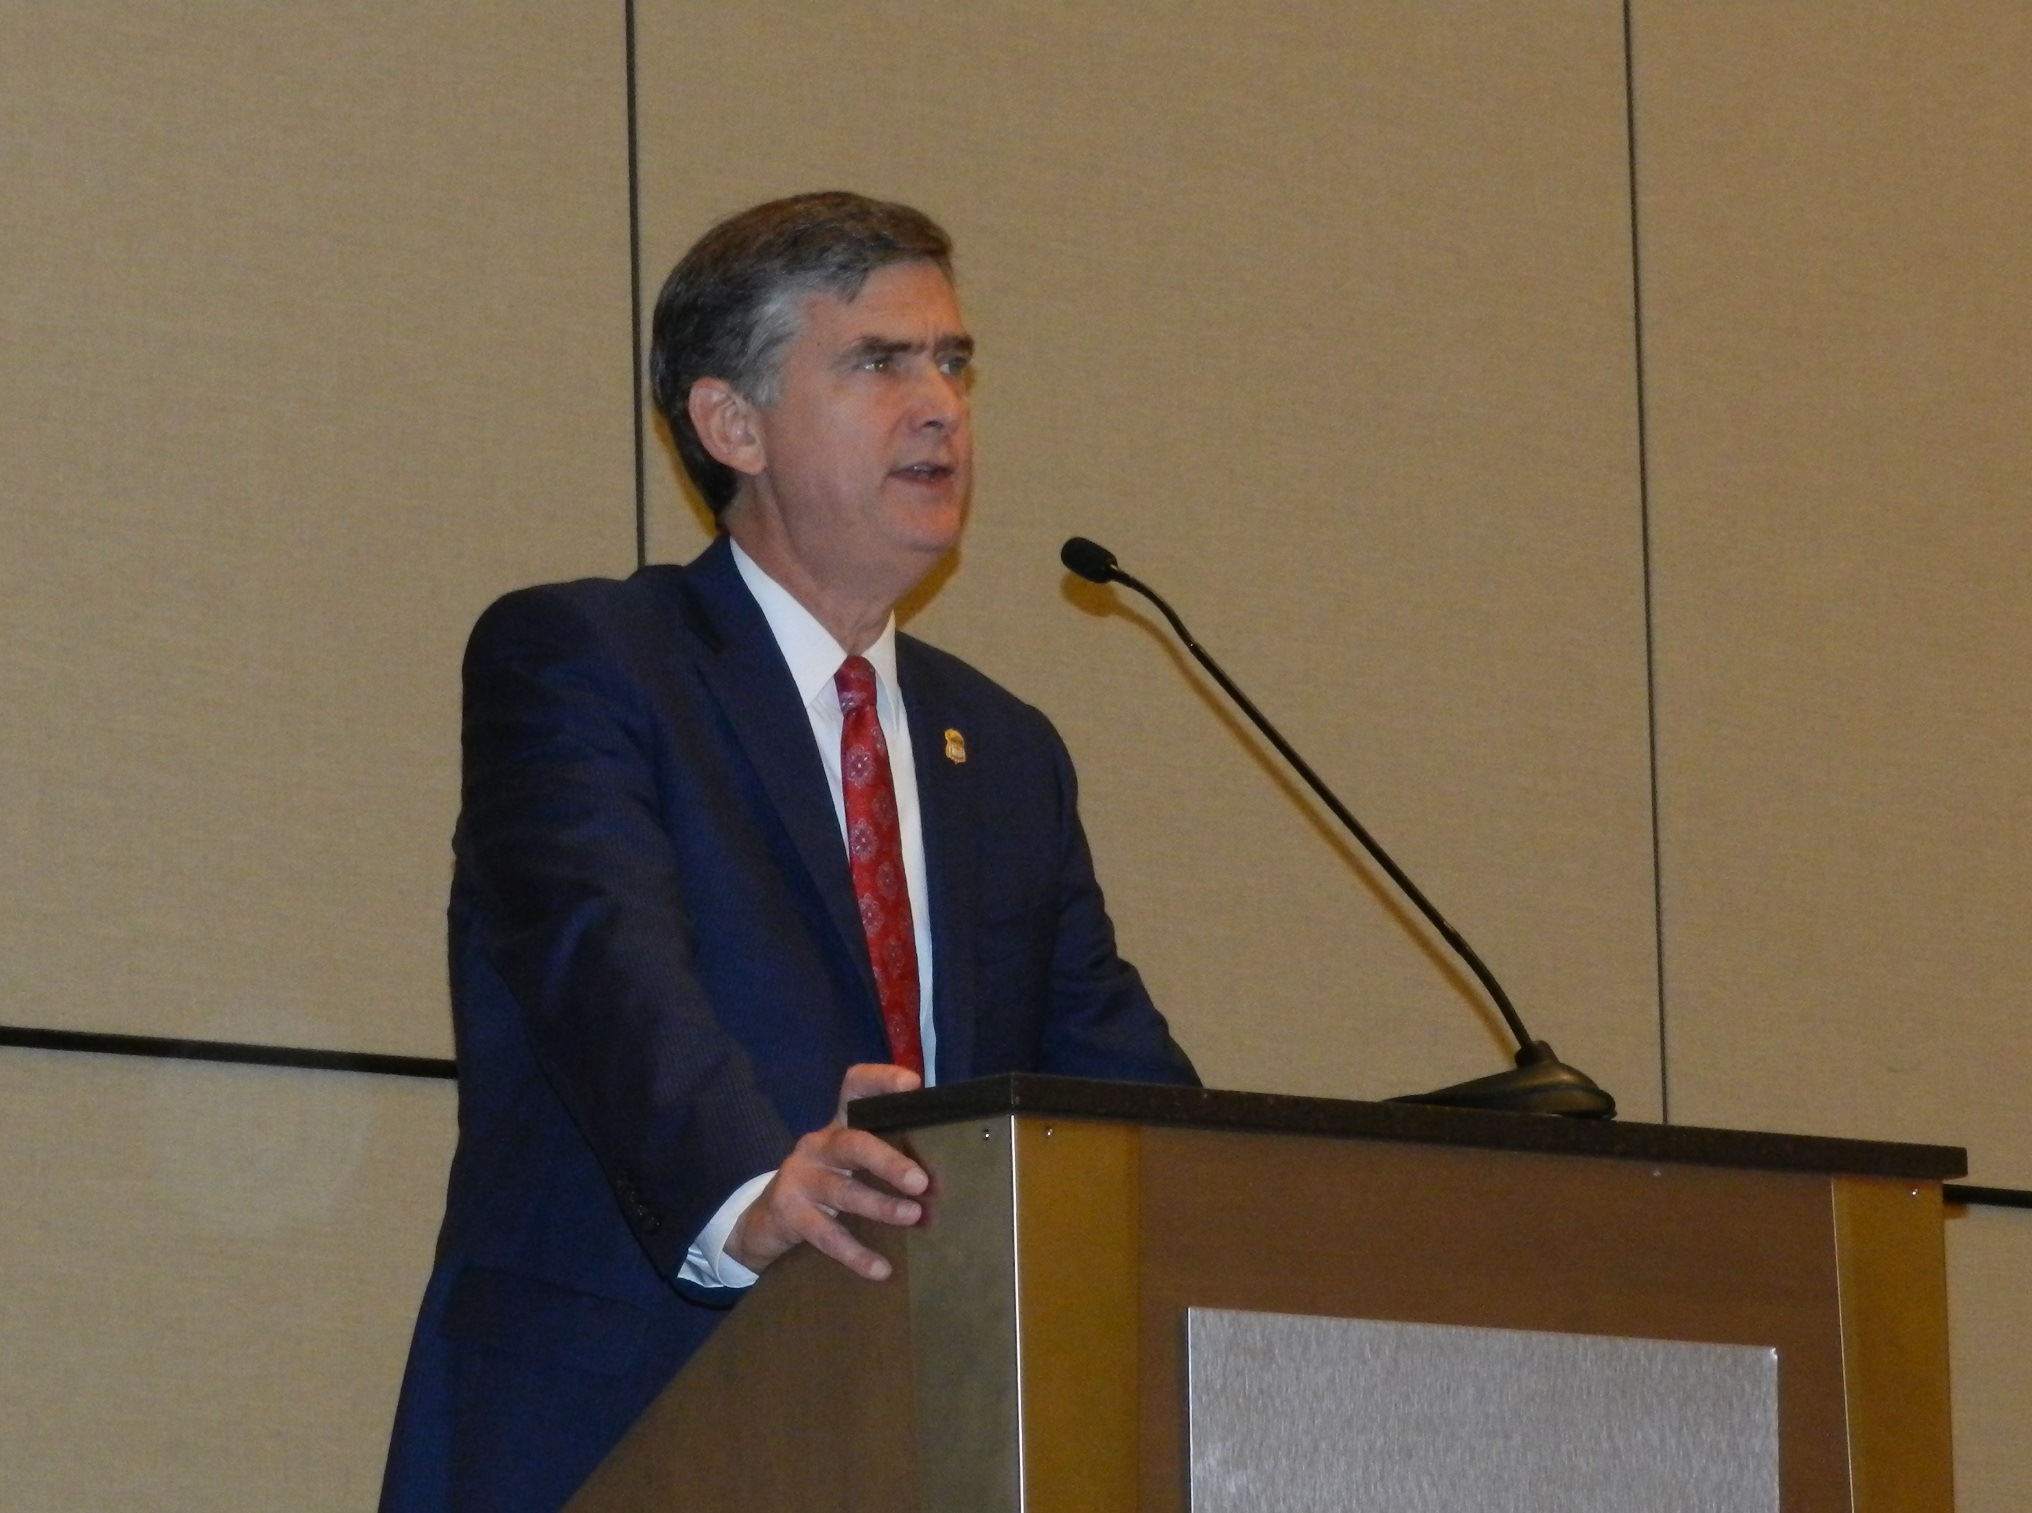 U.S. Attorney speaks during NAACP Conference.